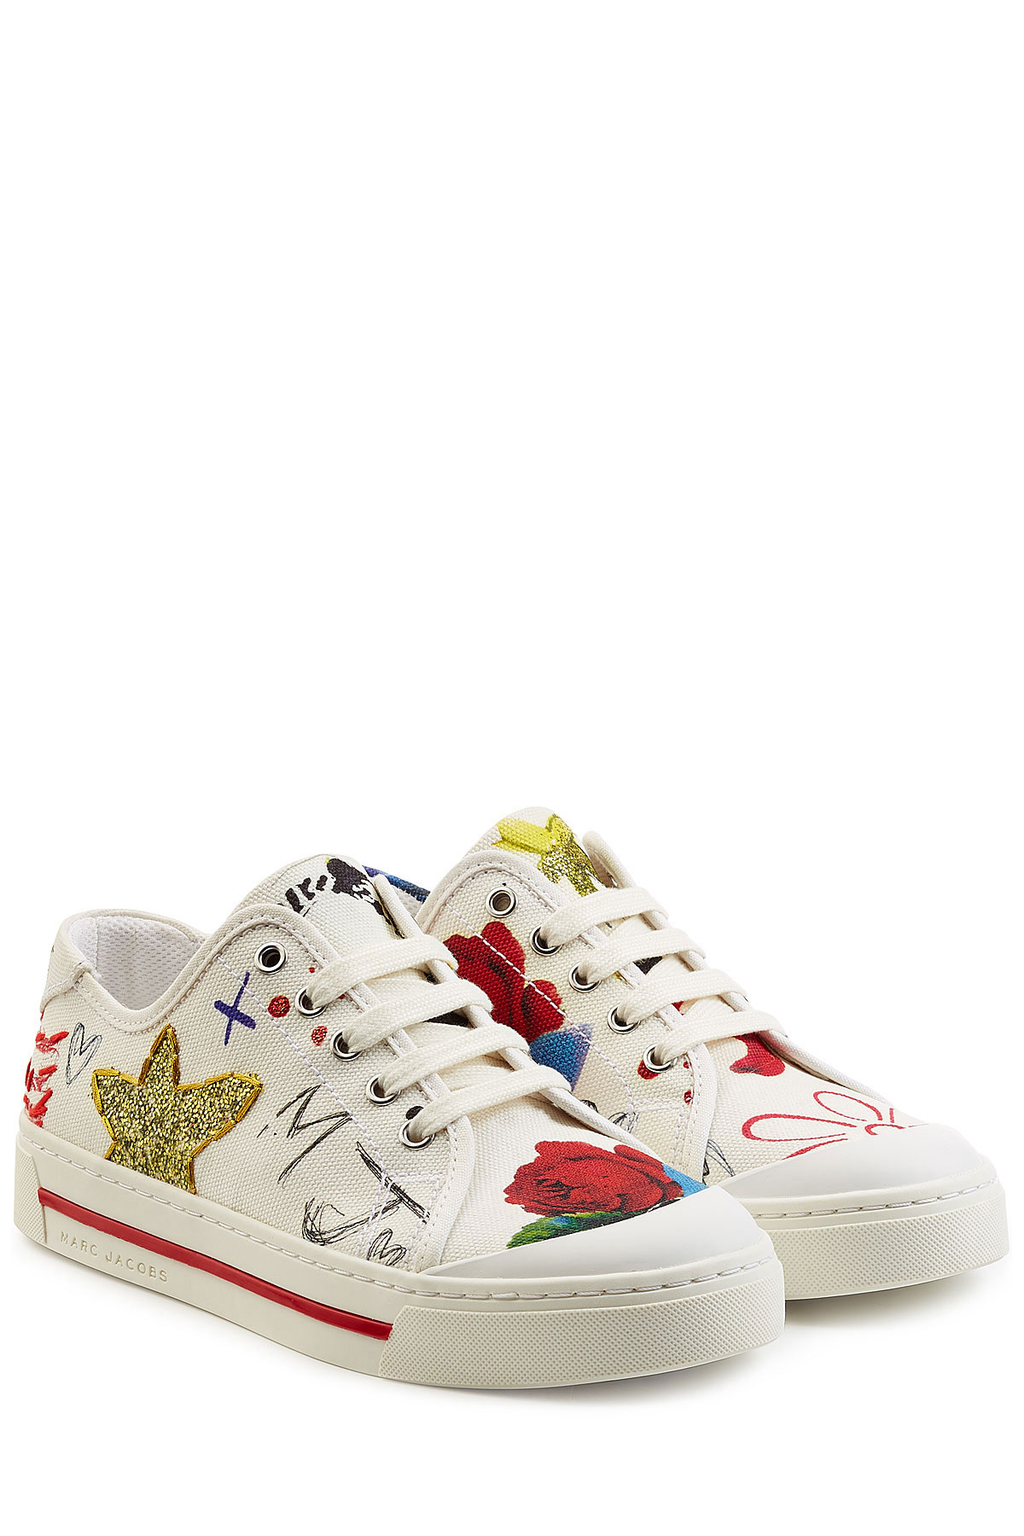 Printed Sneakers White - predominant colour: white; secondary colour: true red; occasions: casual; material: leather; heel height: flat; embellishment: embroidered; toe: round toe; style: trainers; finish: plain; pattern: patterned/print; multicoloured: multicoloured; season: s/s 2016; wardrobe: highlight